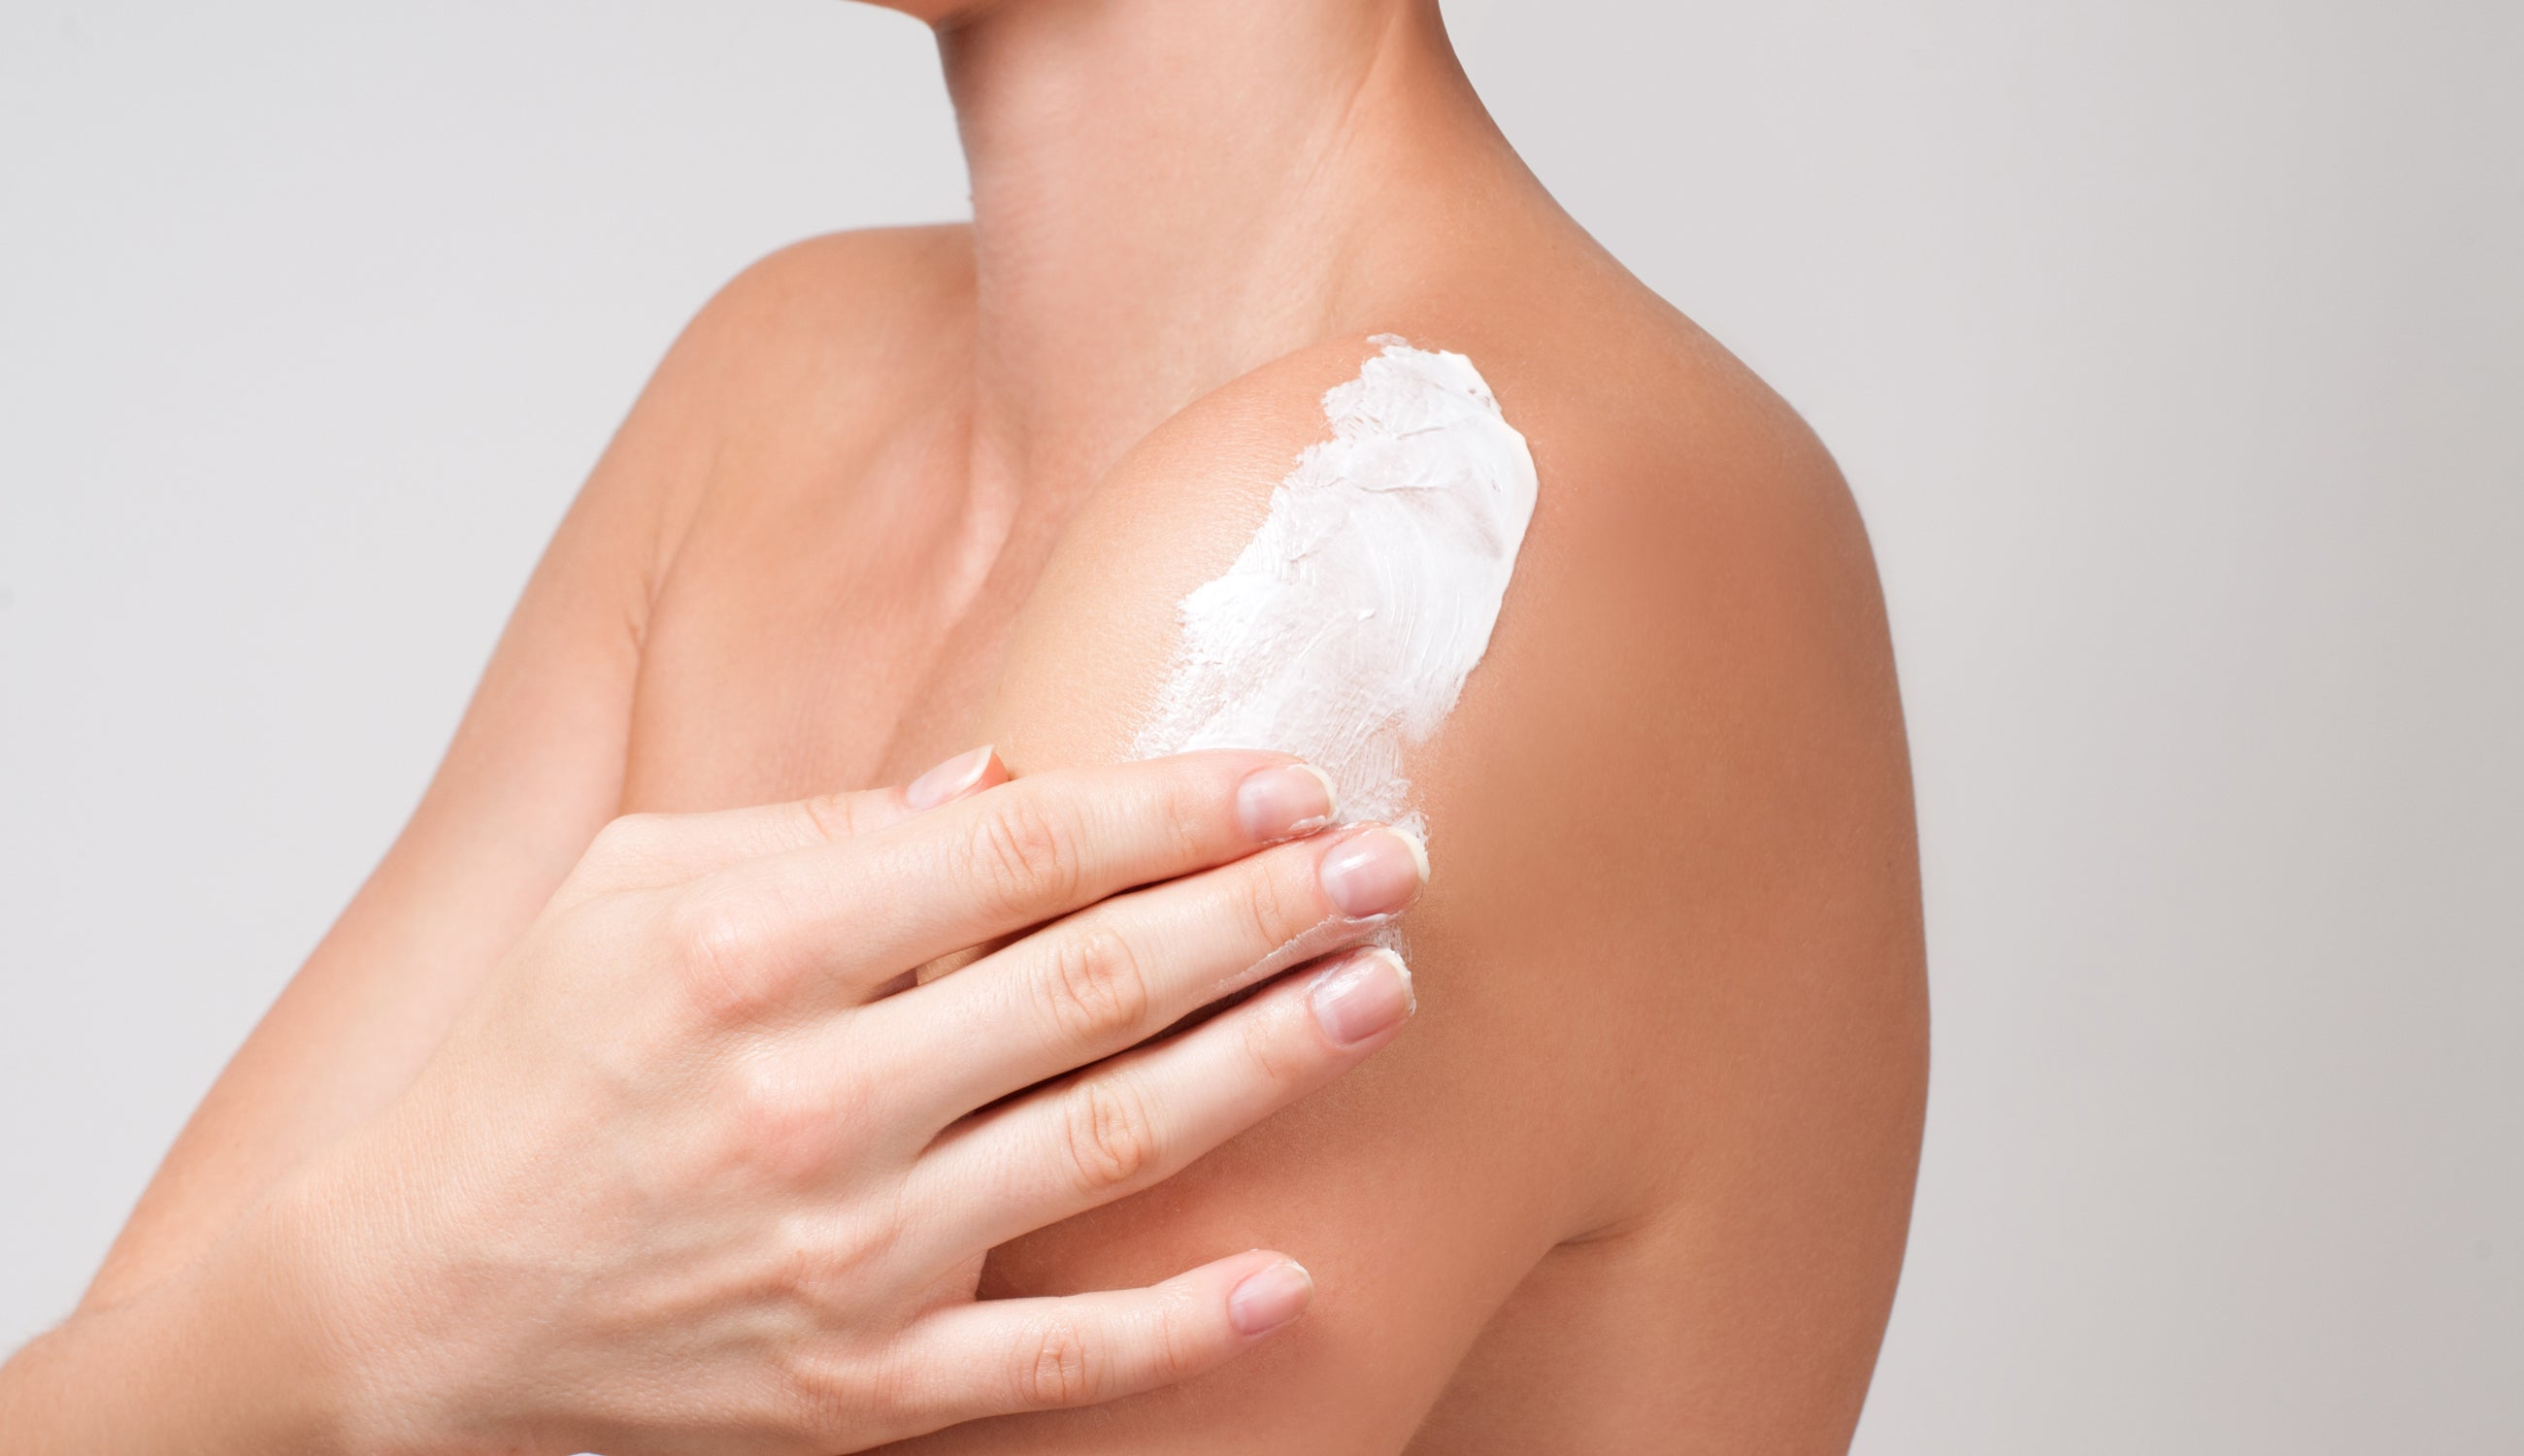 Body Butter or Body Lotion - Which Do You Need?